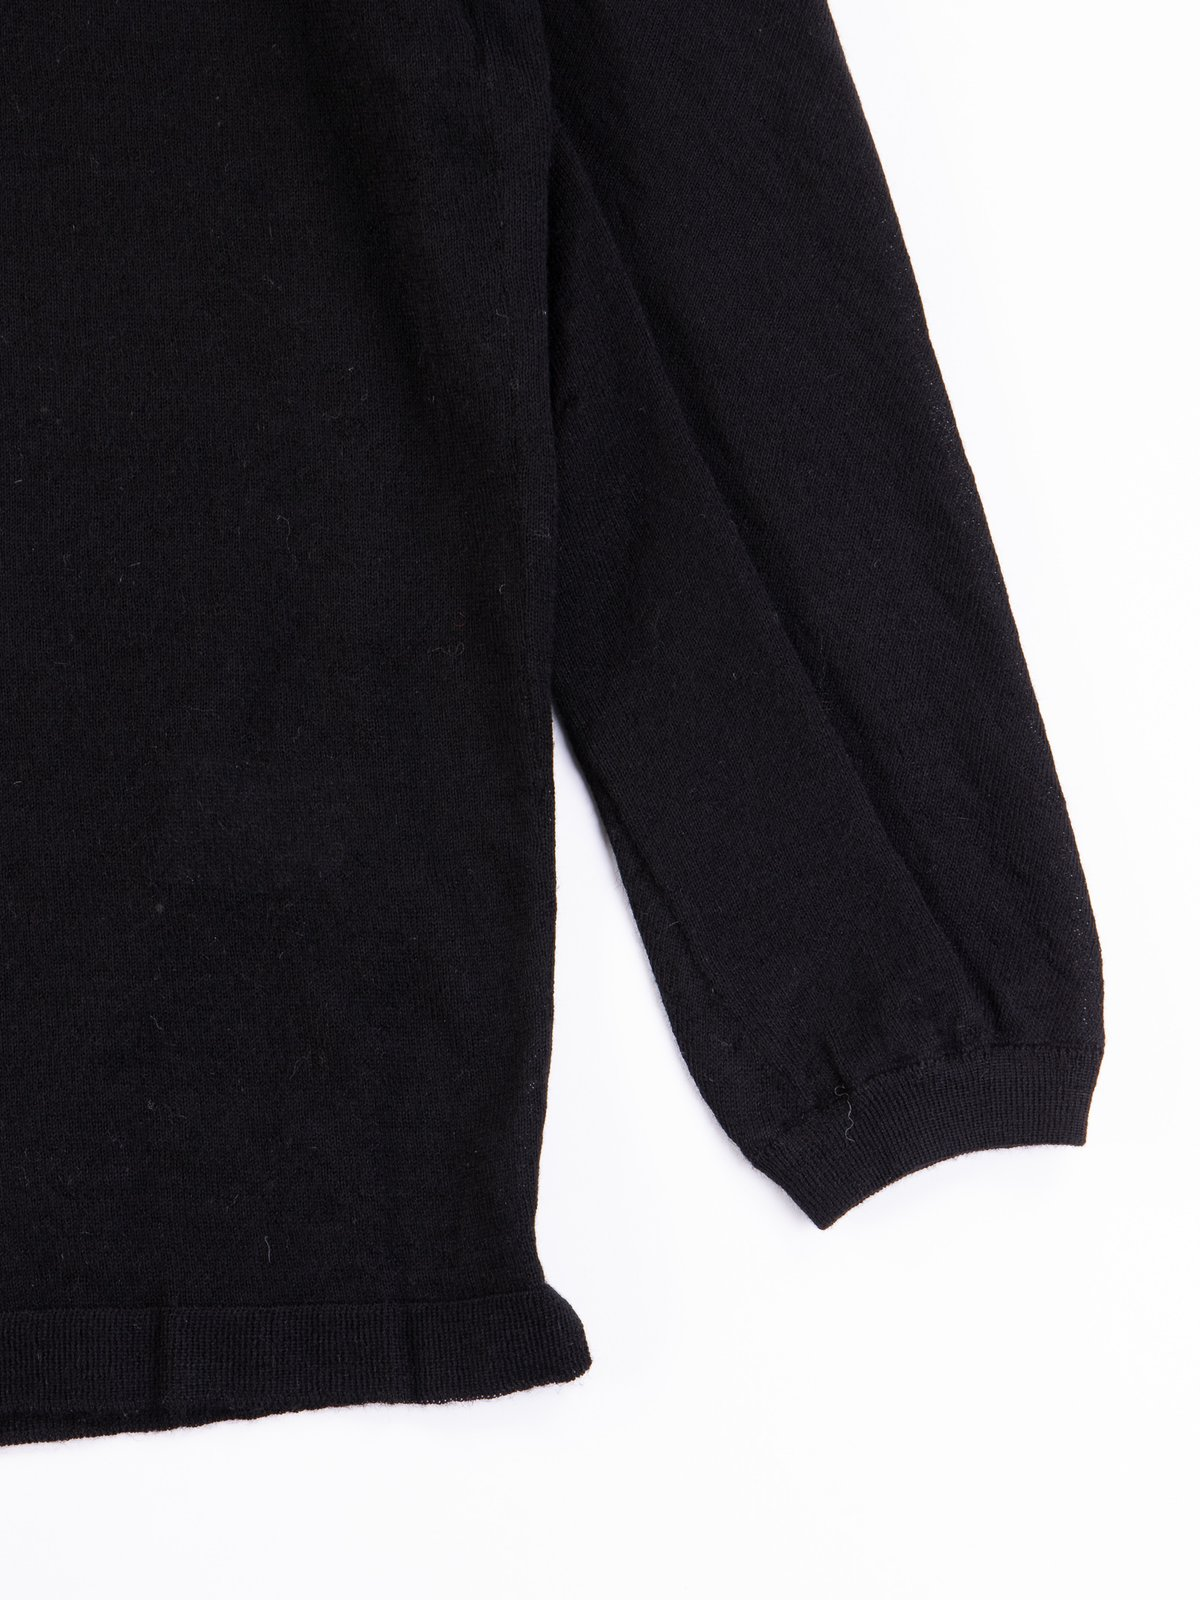 S23–AK Black Cashllama Long Sleeve Sweater - Image 3